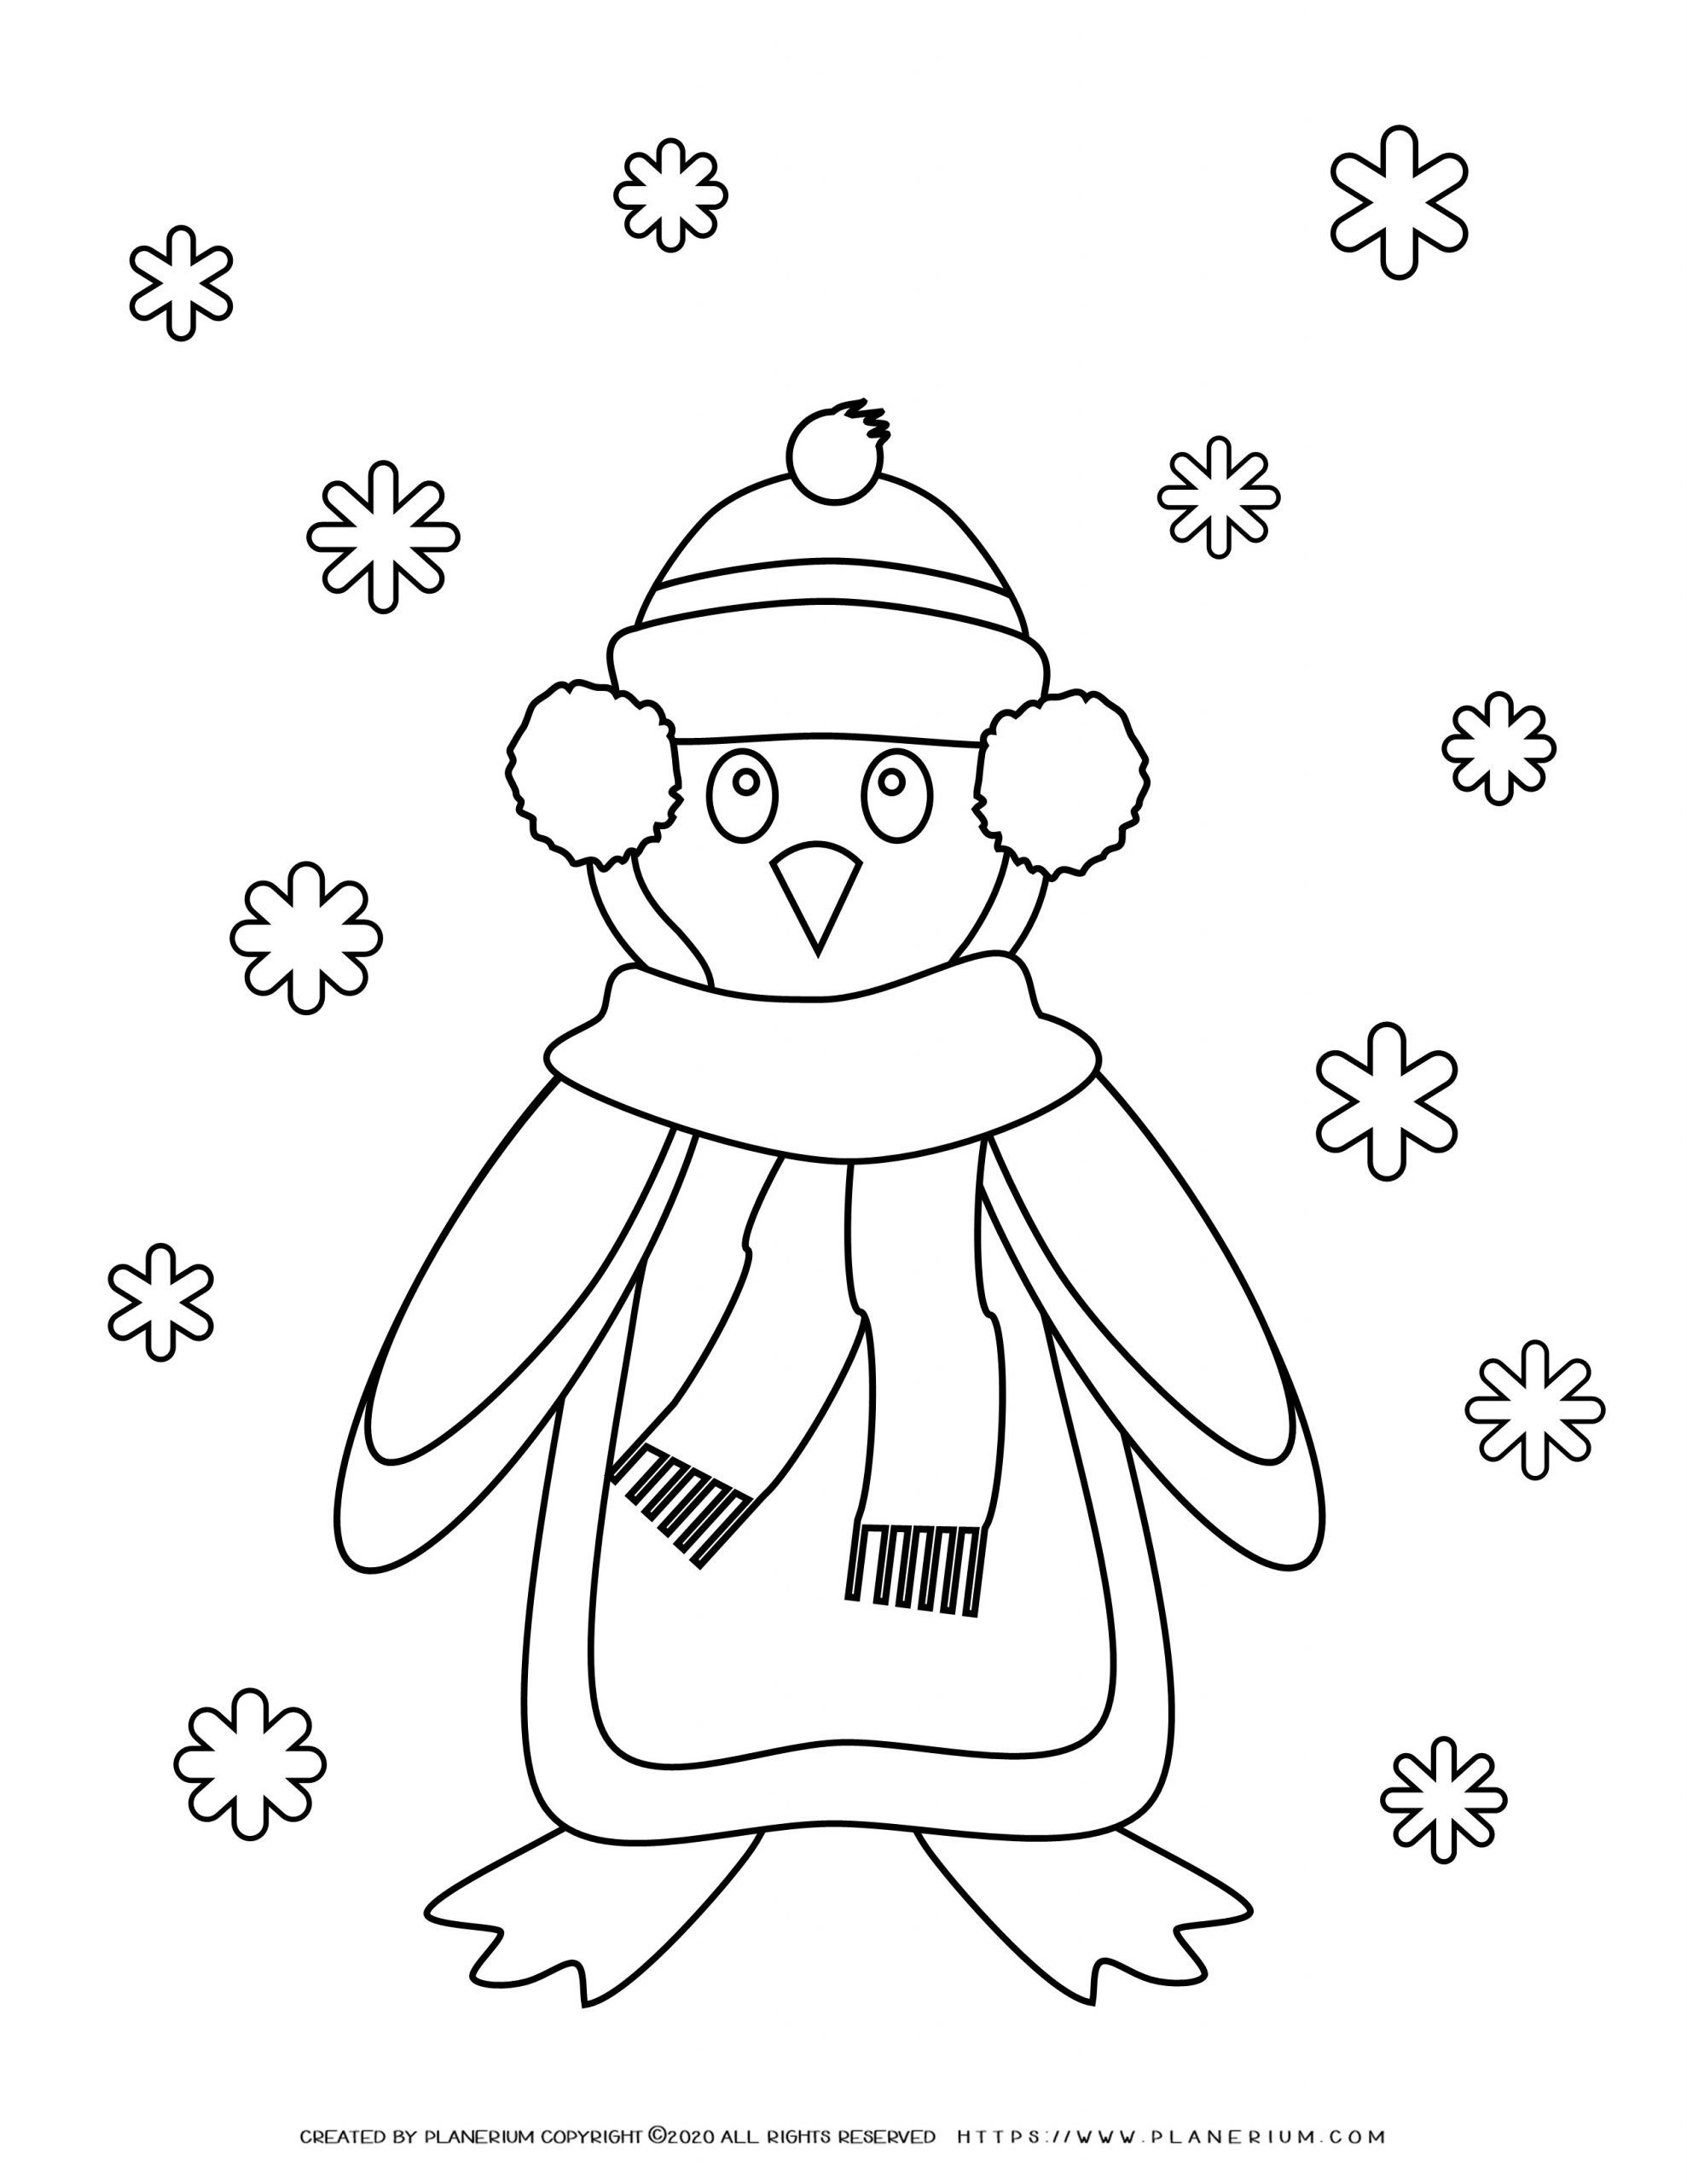 Winter Coloring Page - Penguin and Snowflakes   Planerium